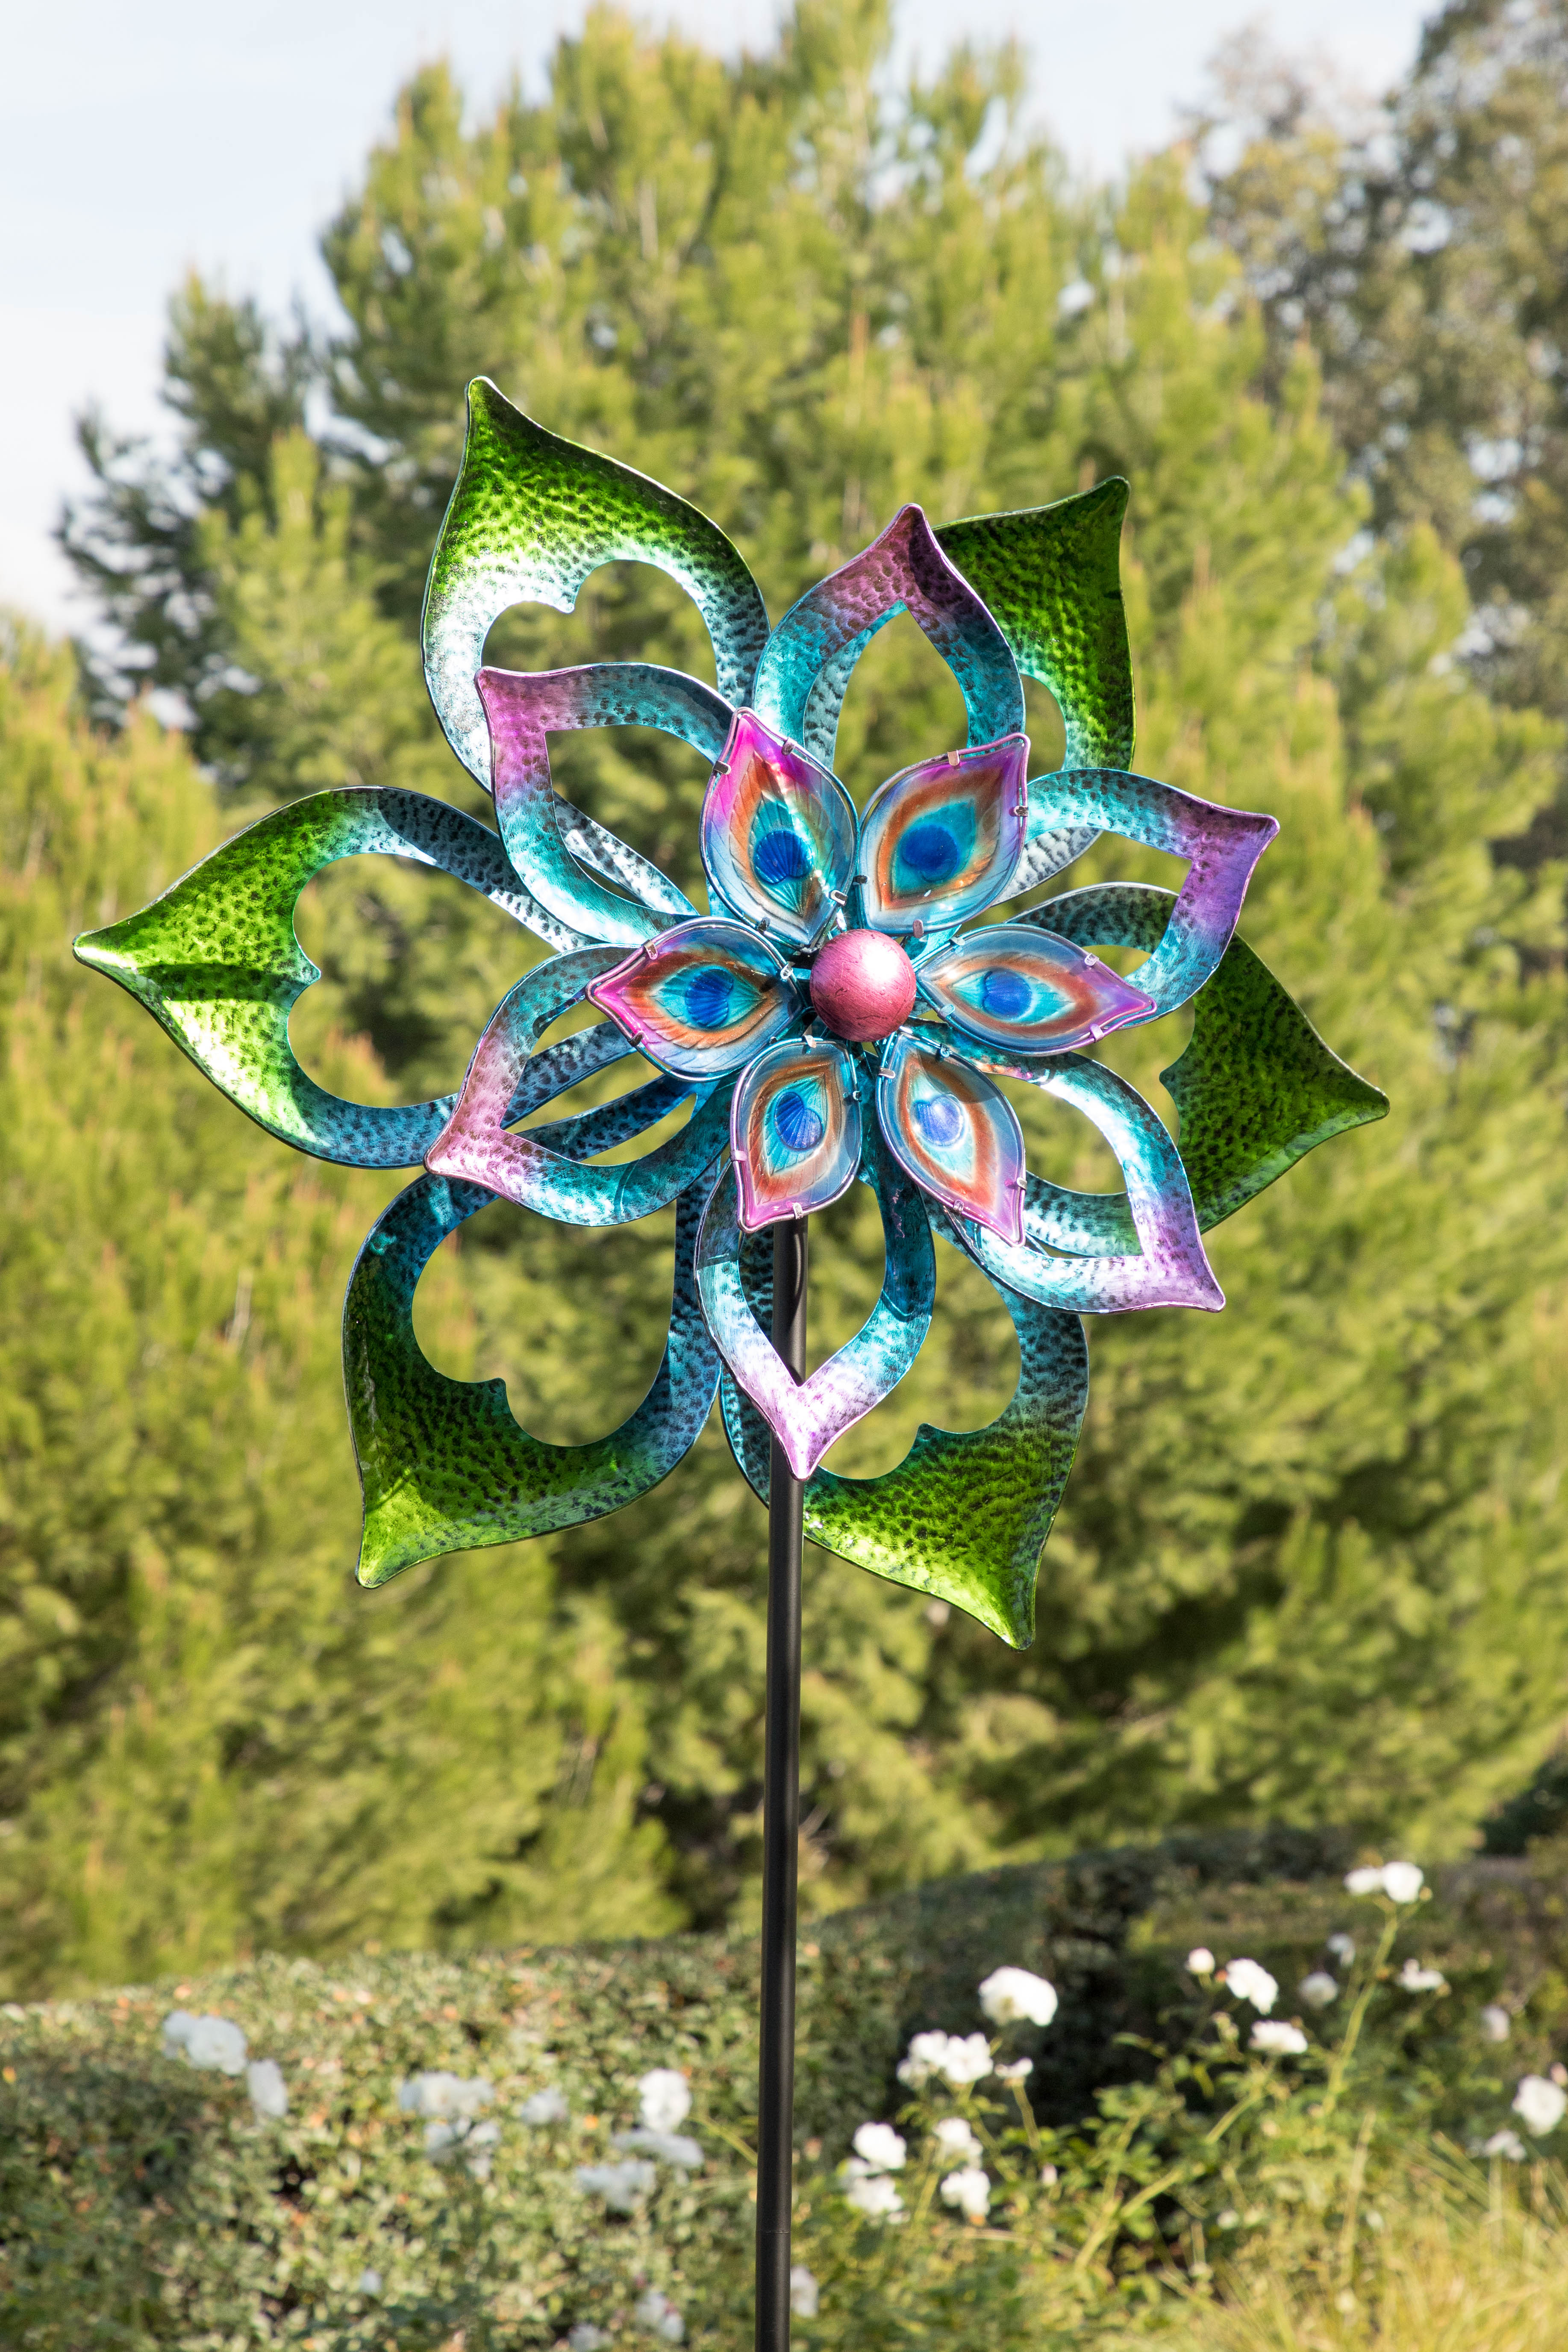 Alpine Metal Double-Sided Flower Spinning Garden Stake, 96 Inch Tall by Alpine Corporation